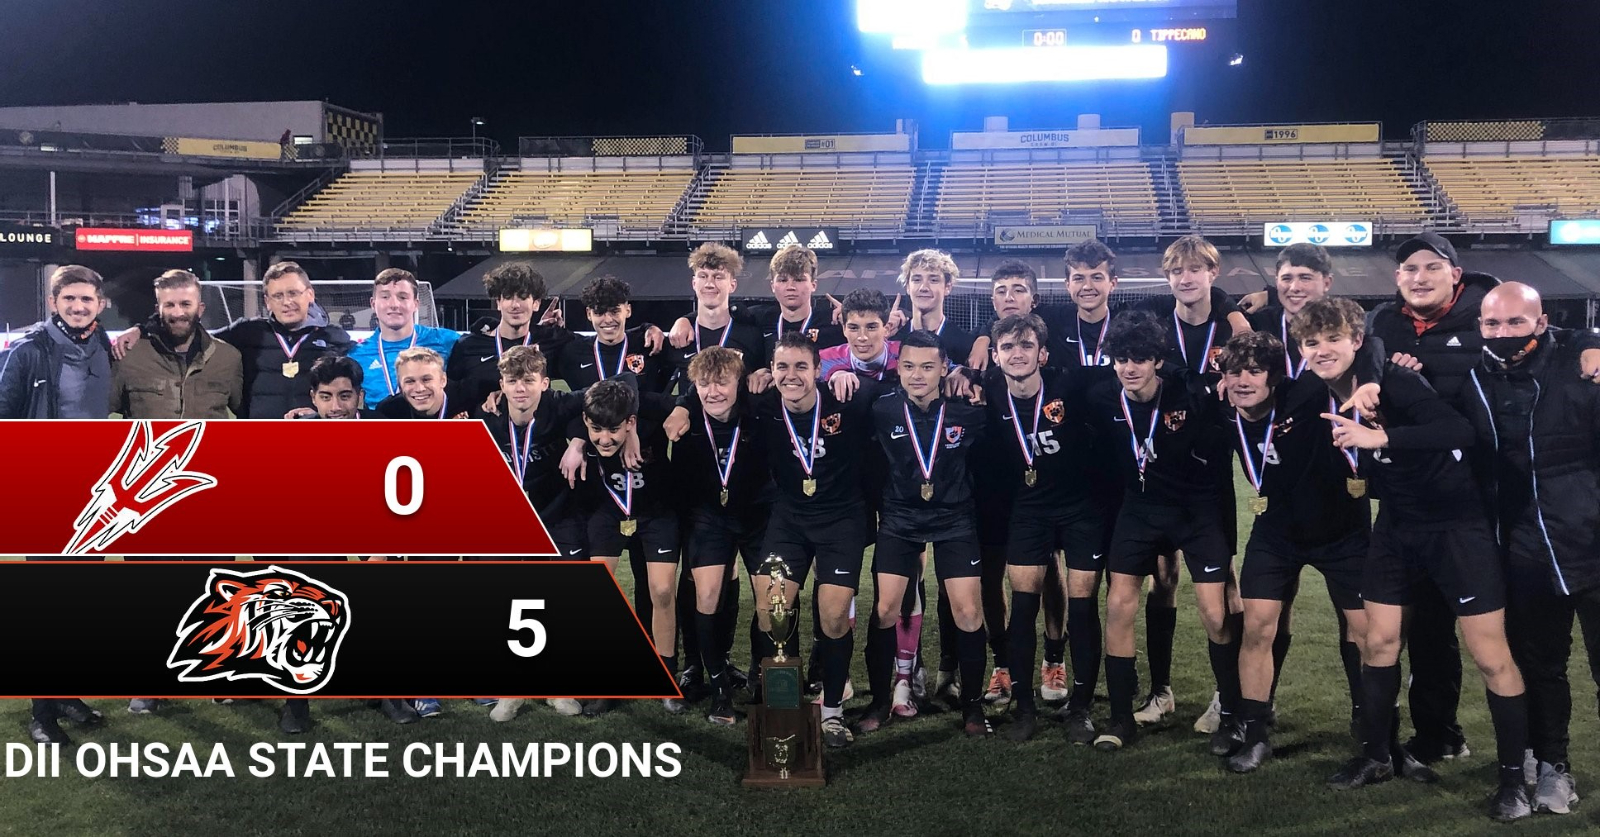 Boys Soccer Division II OHSAA State Champions! 1st ever Team State Championship in School History!